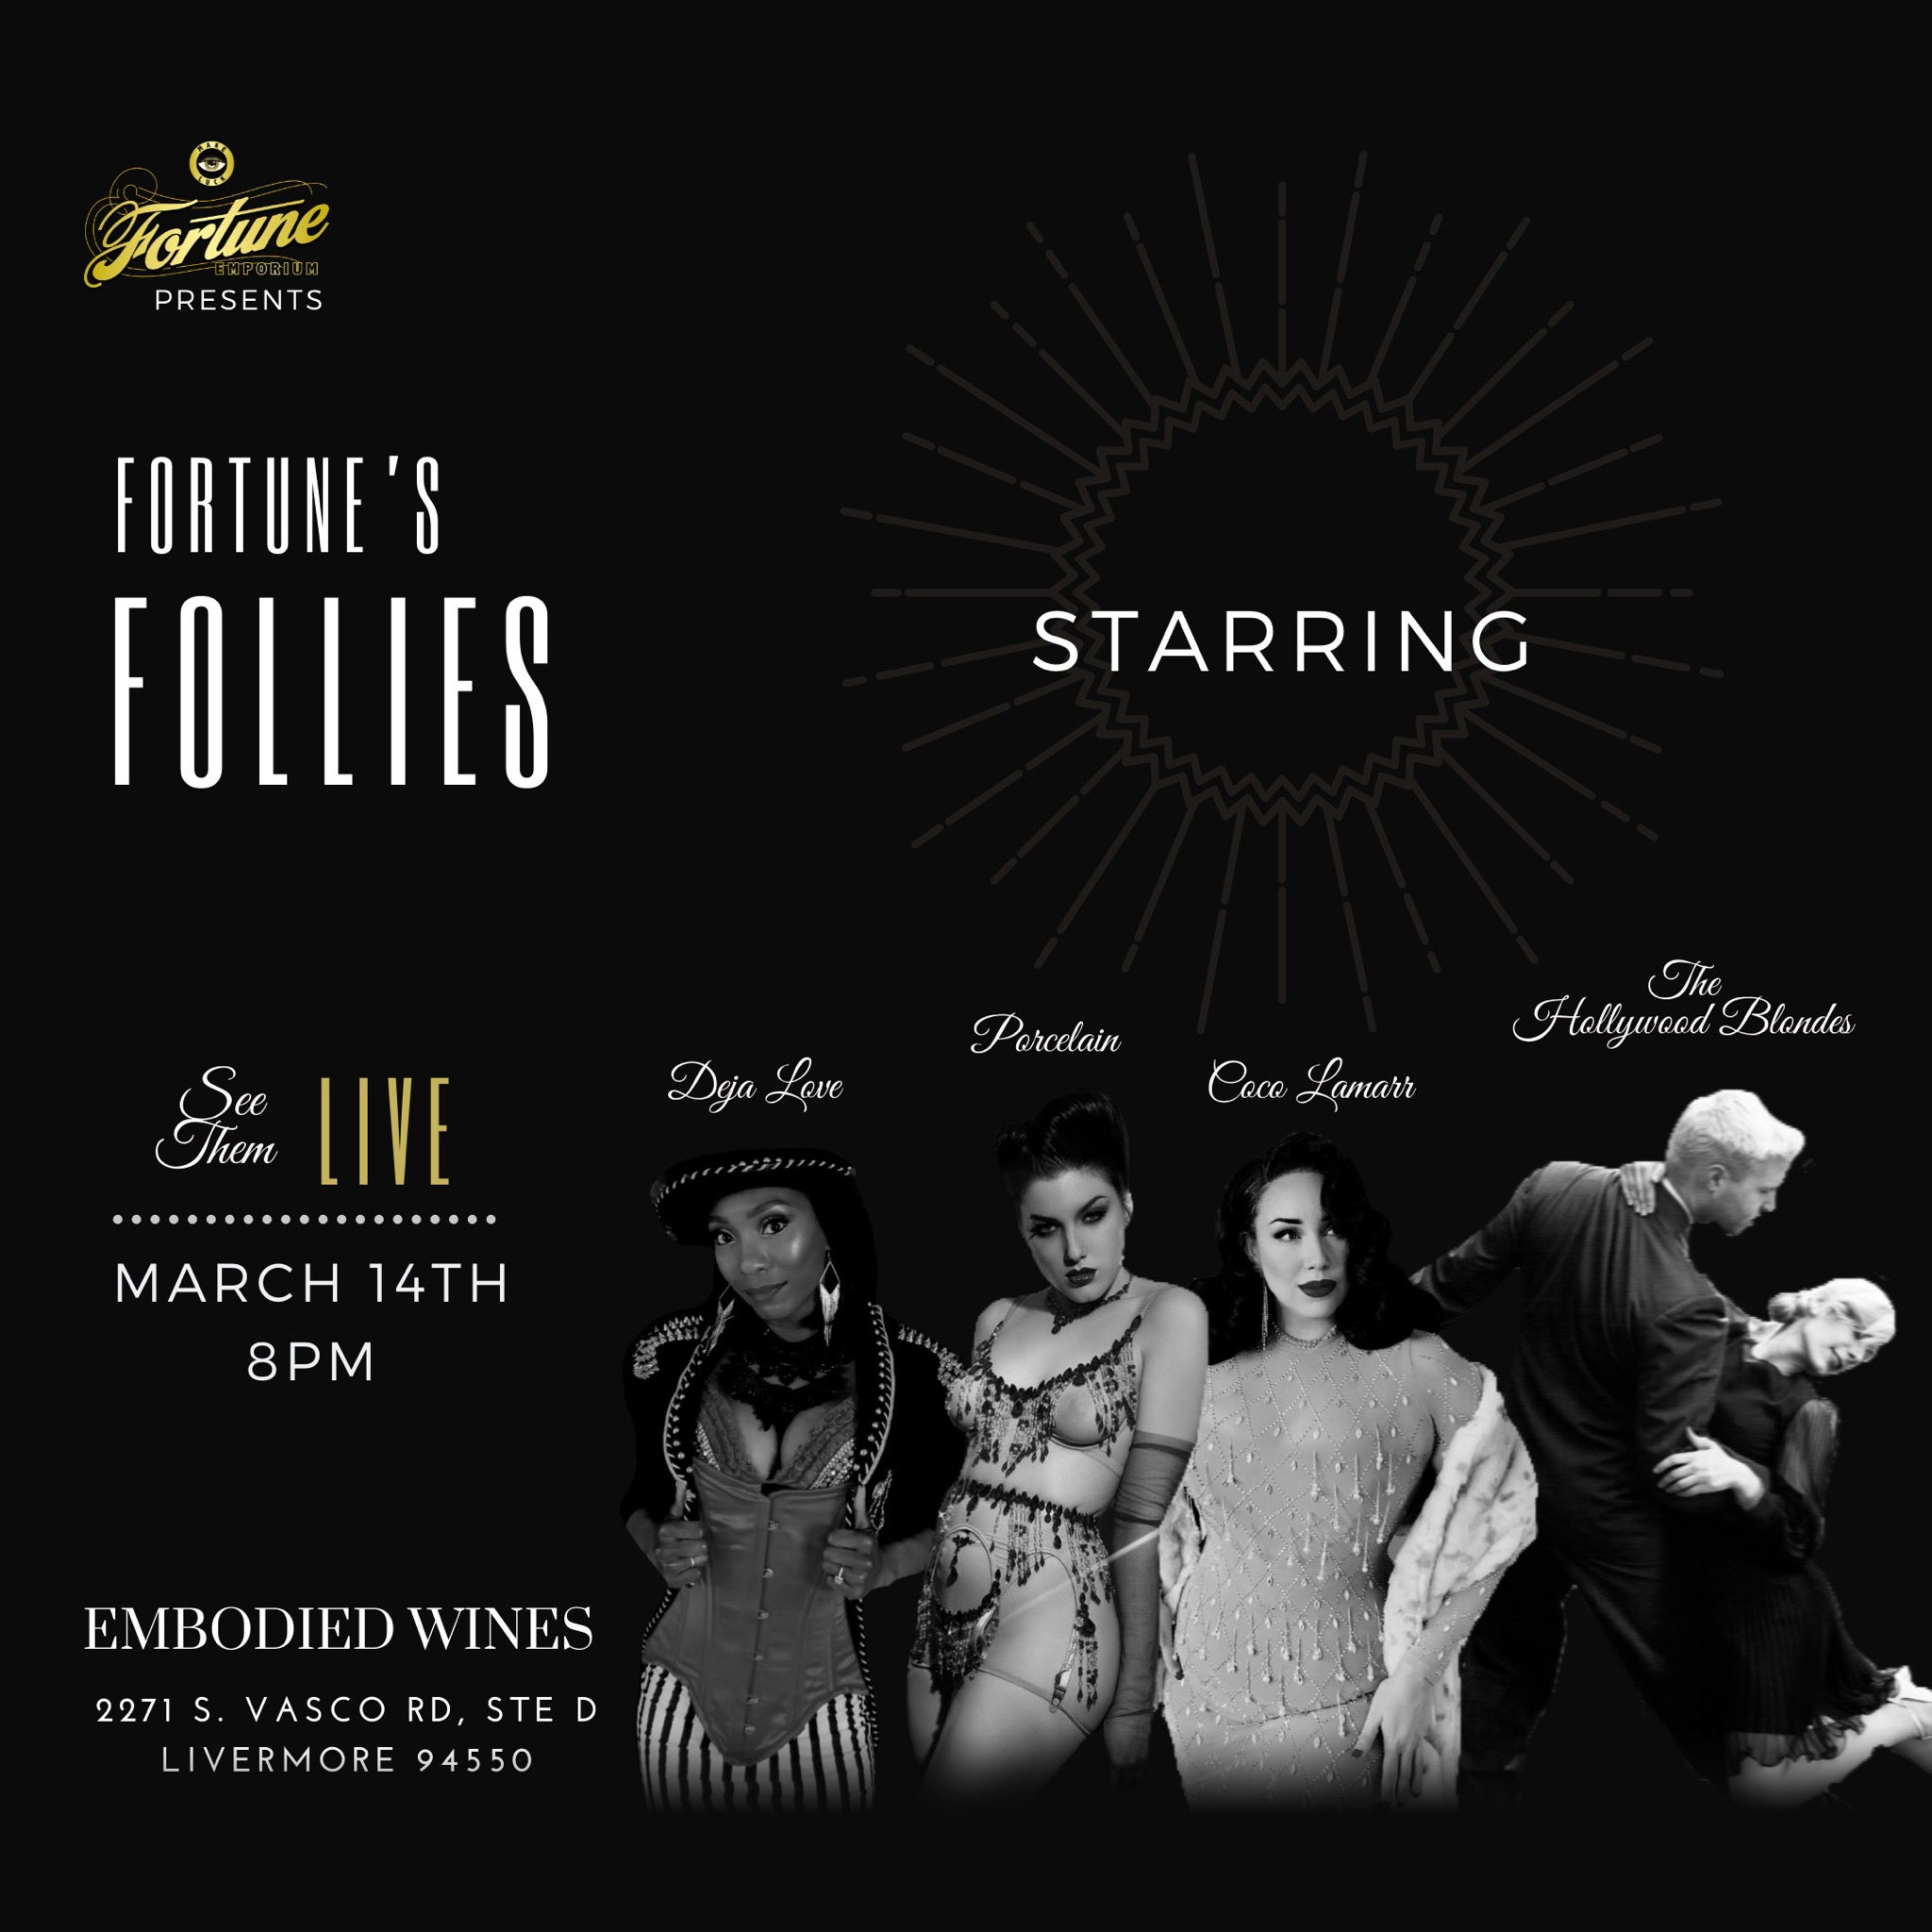 Fortune's Follies: A 1940's Variety Show is coming to Livermore!